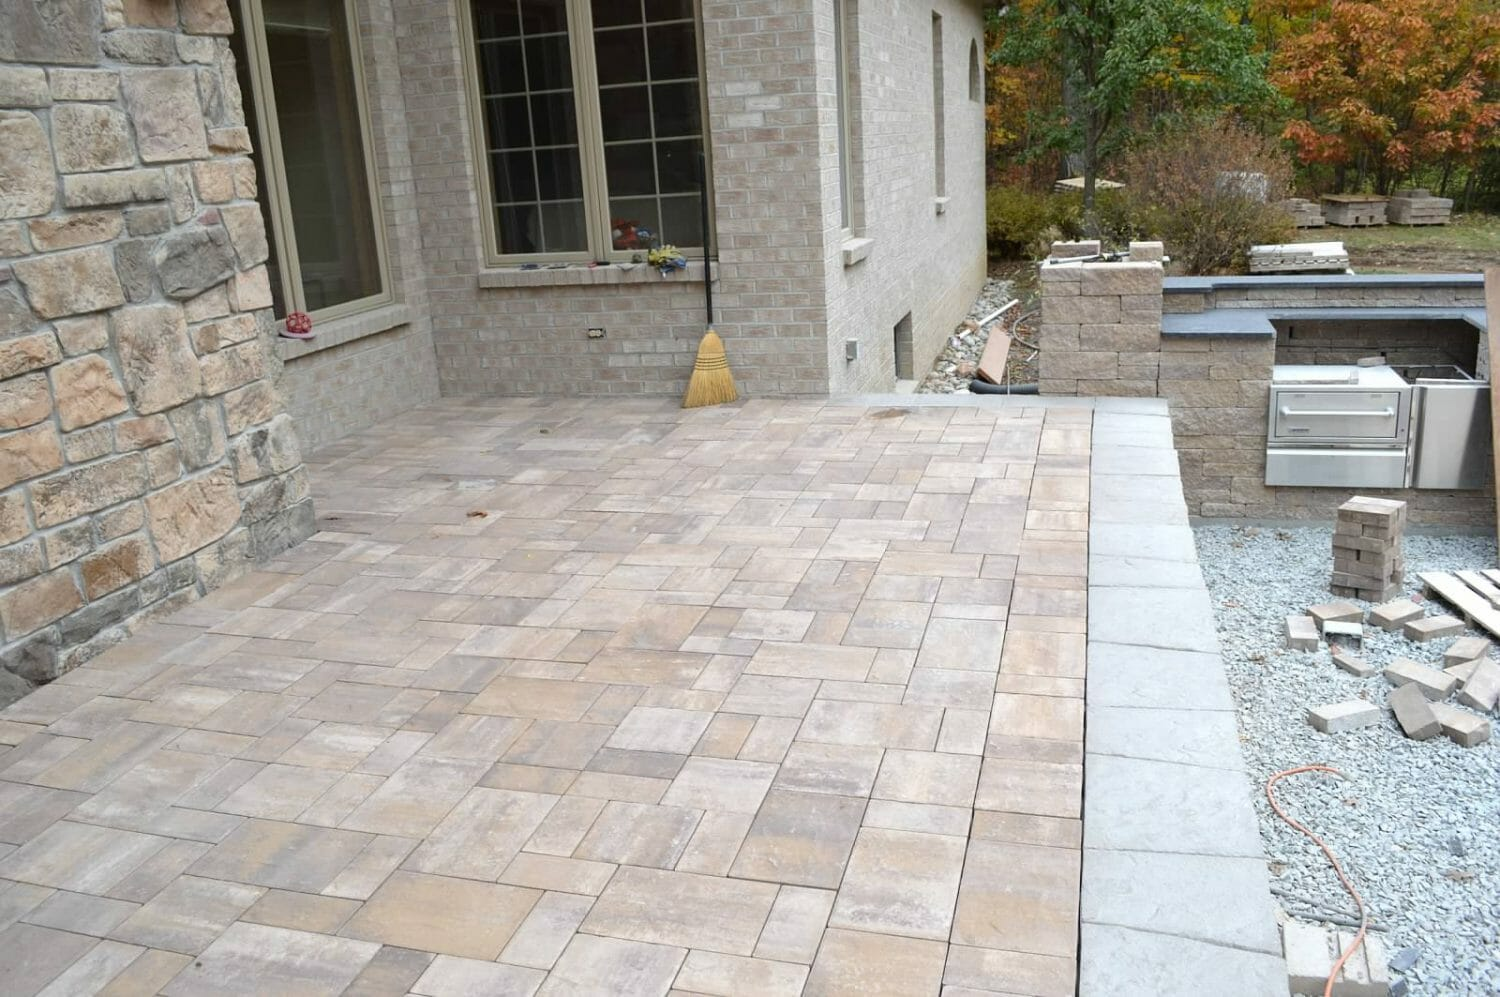 Wynantskill Troy NY hardscape patio landscape designer 1500x997 - Landscape Plan Installation and Project Management